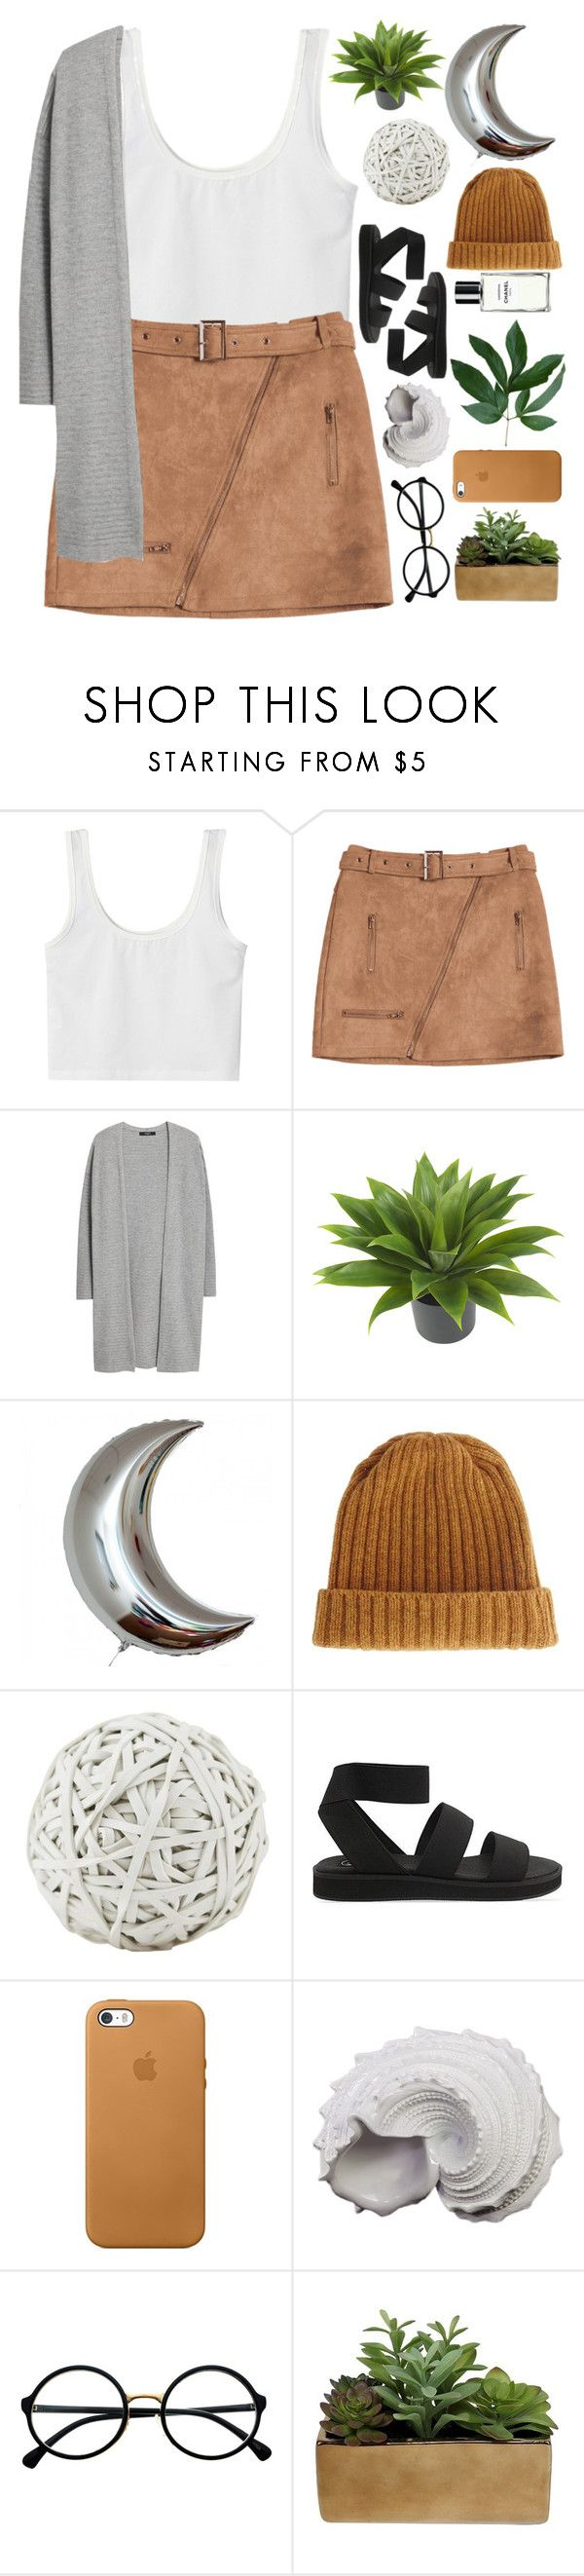 """""""Until Our Paths Crossed Again"""" by theafergusma ❤ liked on Polyvore featuring MANGO, Nearly Natural, ASOS, Cheap Monday, Chanel, Urban Trends Collection, Retrò and Threshold"""